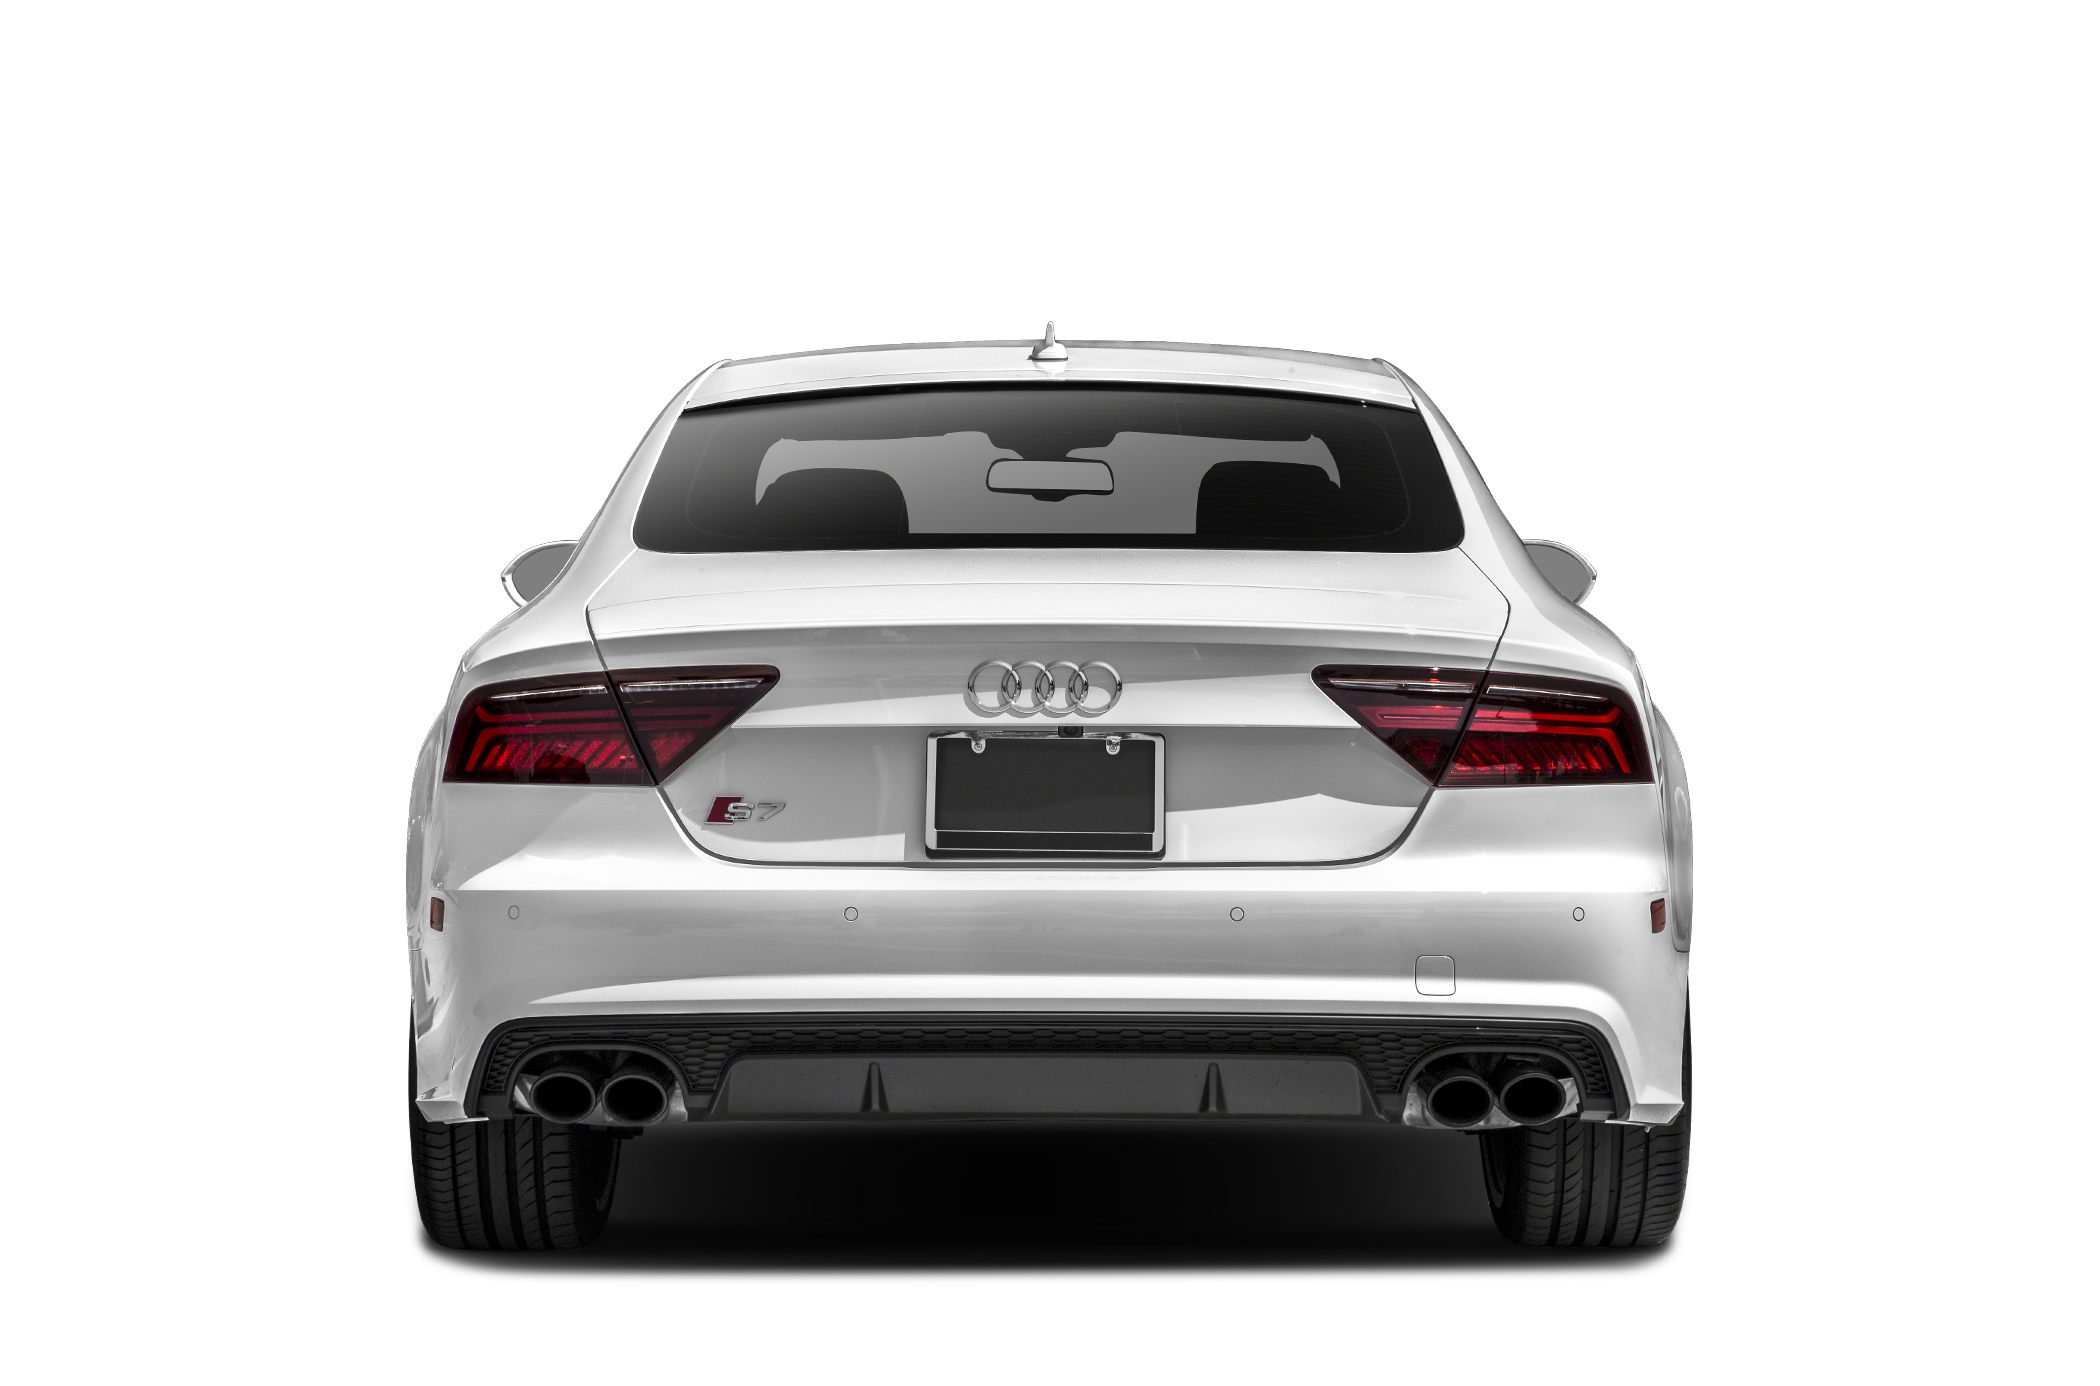 audi s7 change year not yet rated 21 photos 21 photos of 2017 audi s7